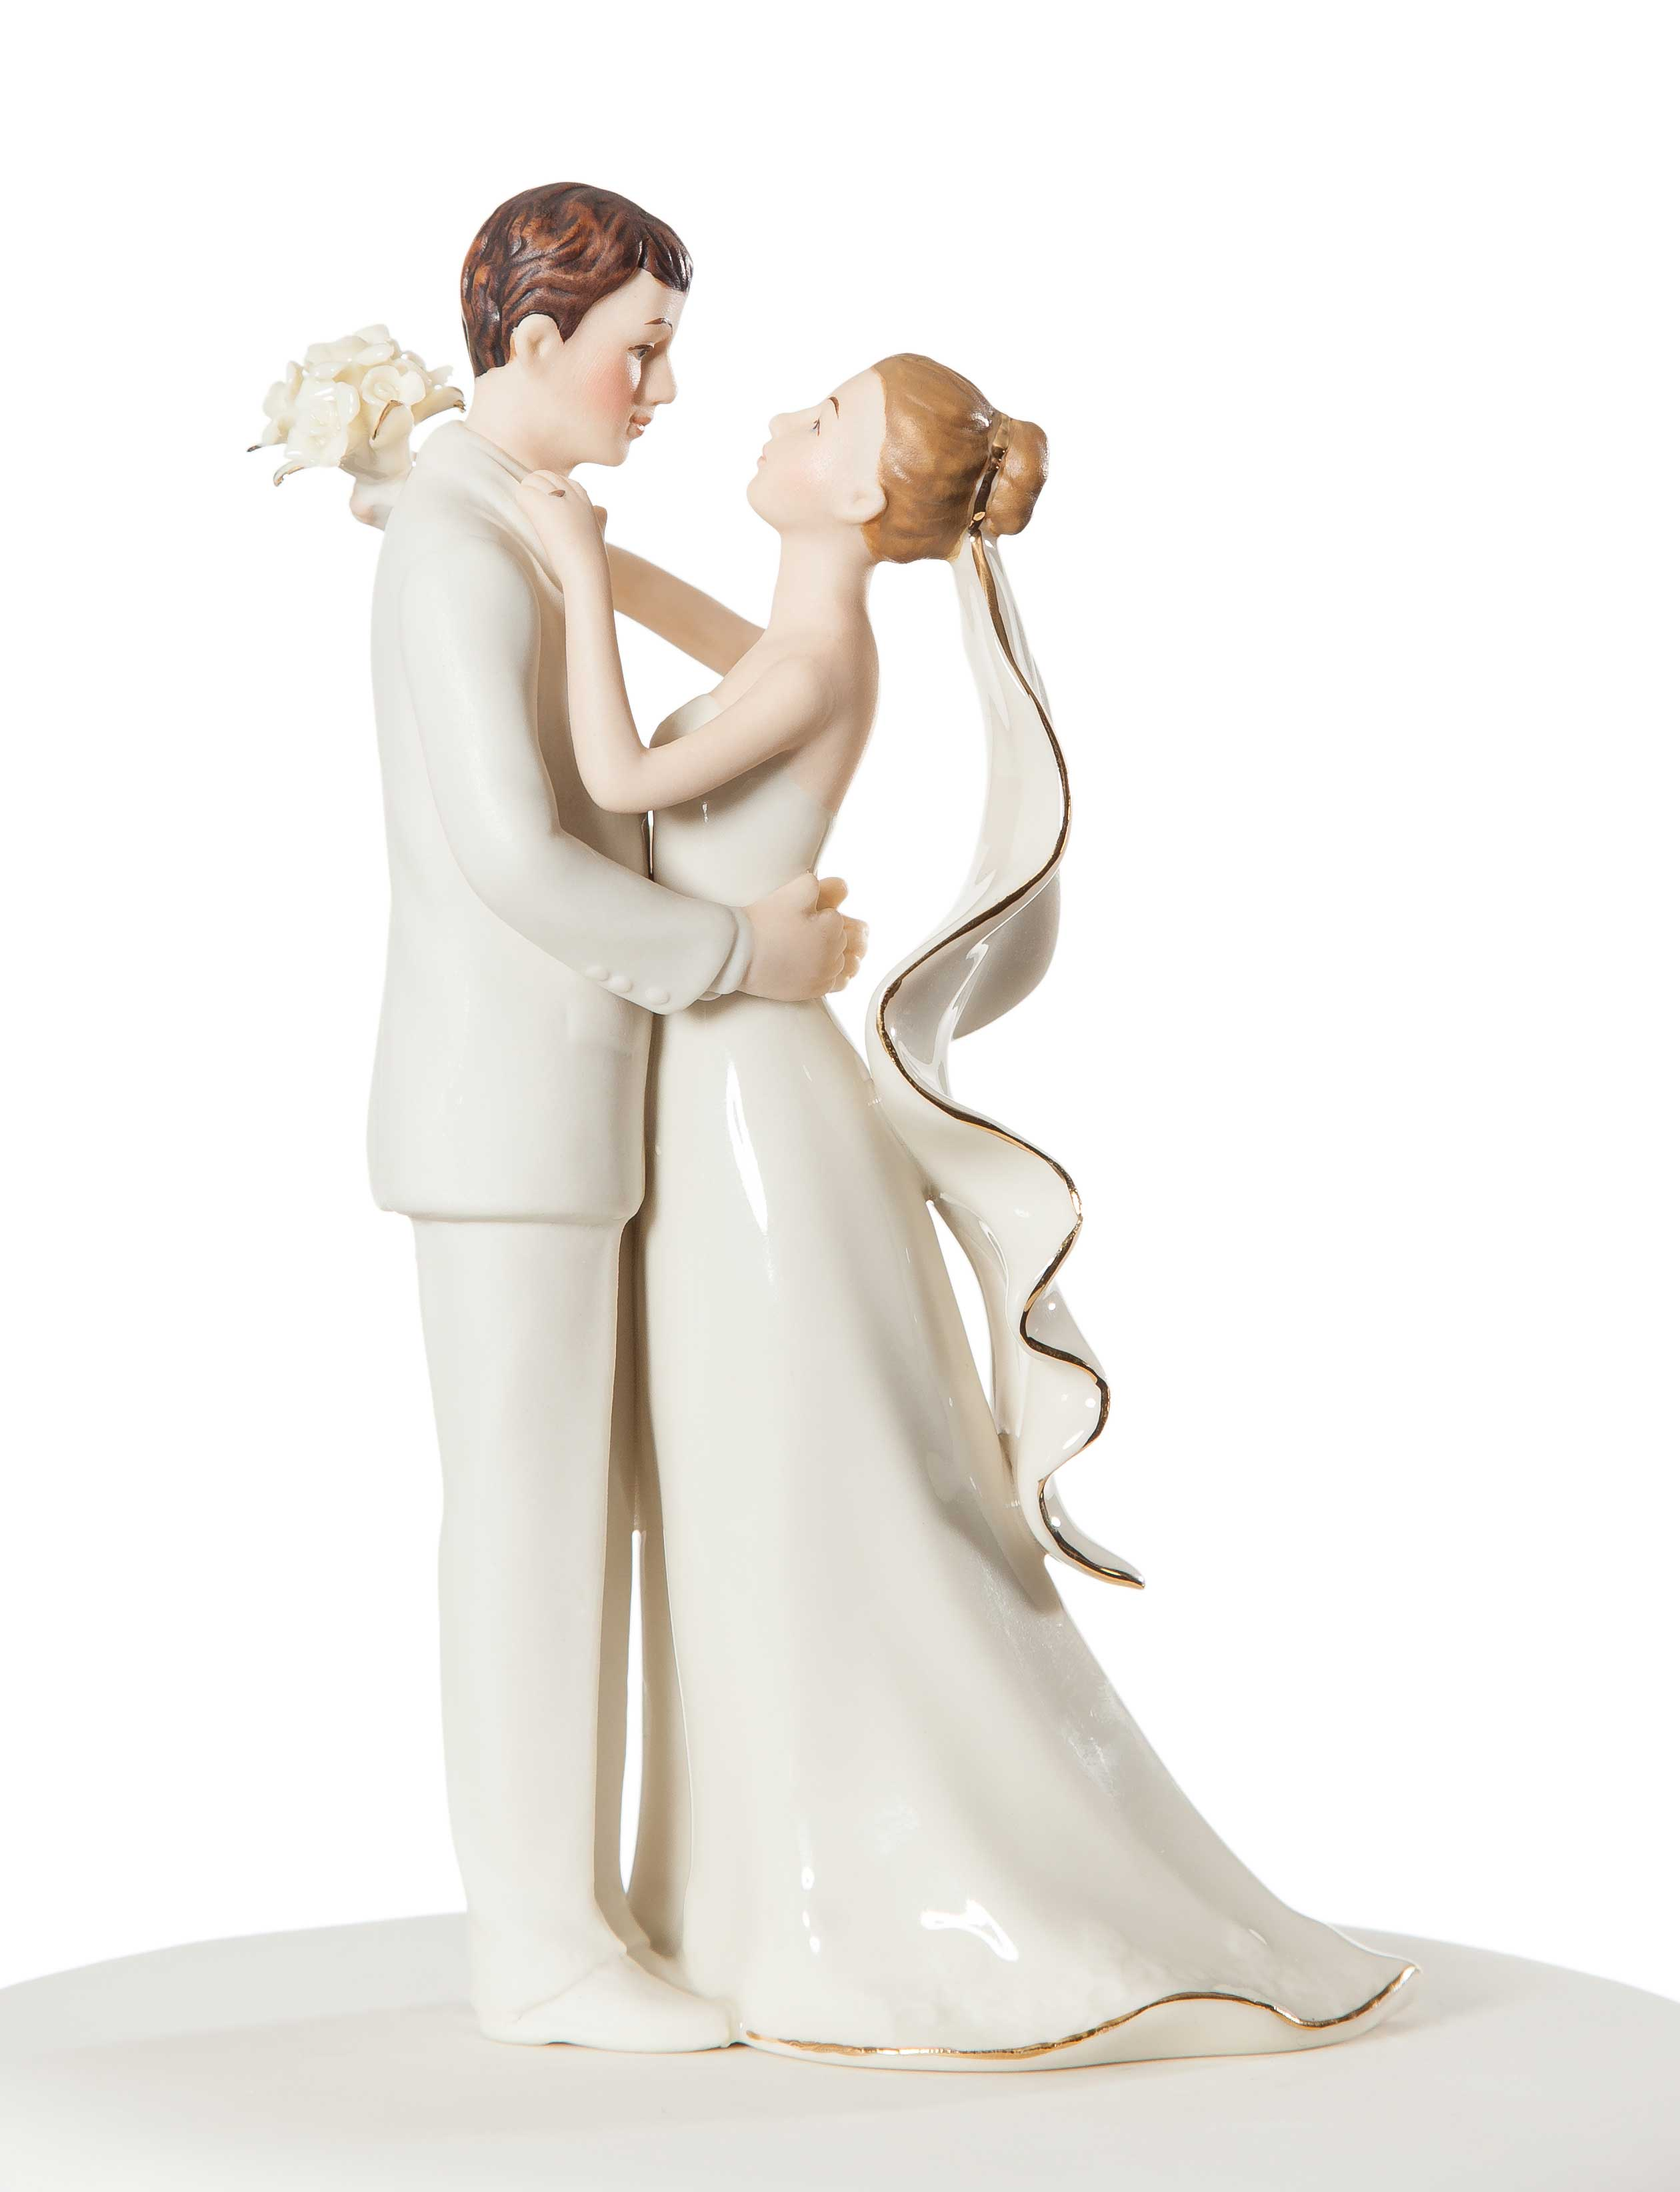 f White Porcelain Bride and Groom Wedding Cake Topper